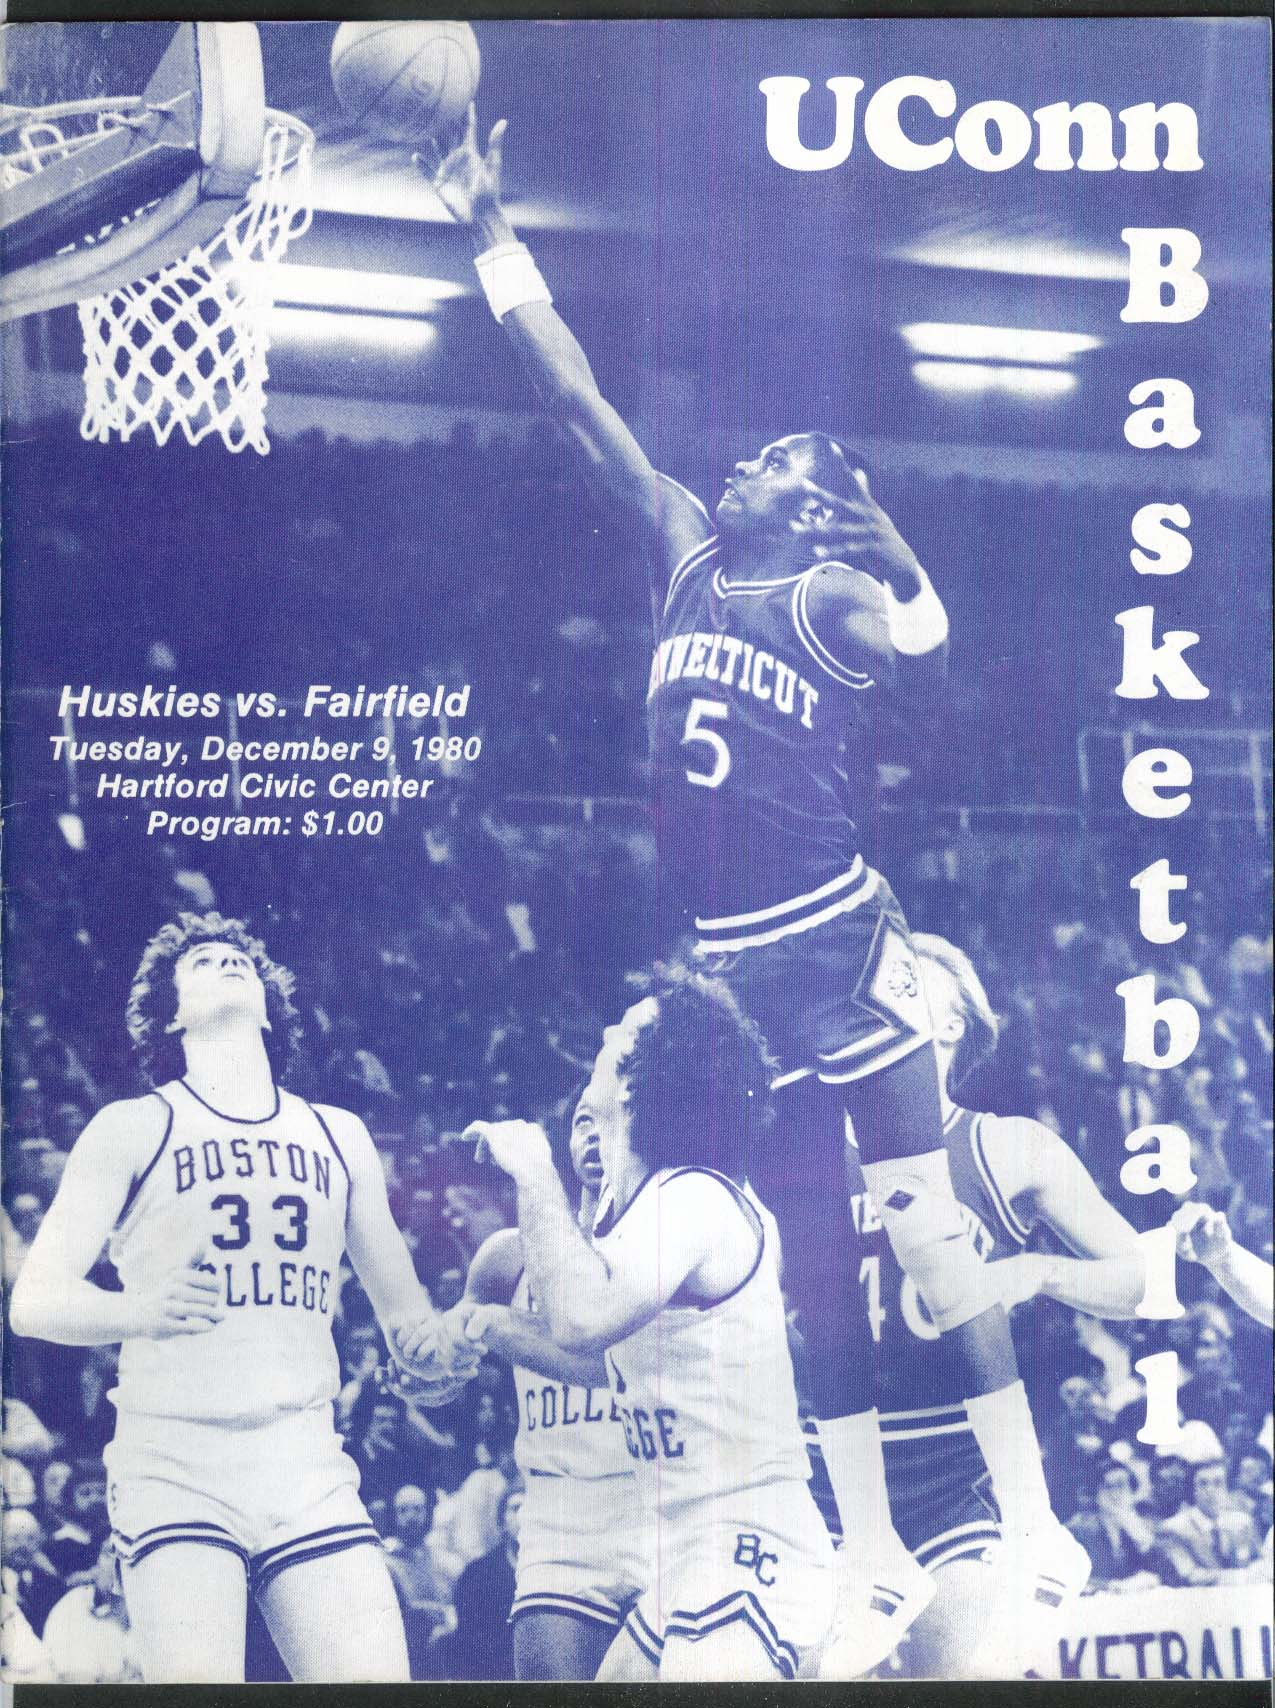 Image for Uconn Basketball Huskies vs Fairfield 12/9 1980 Hartford Civic Center Program